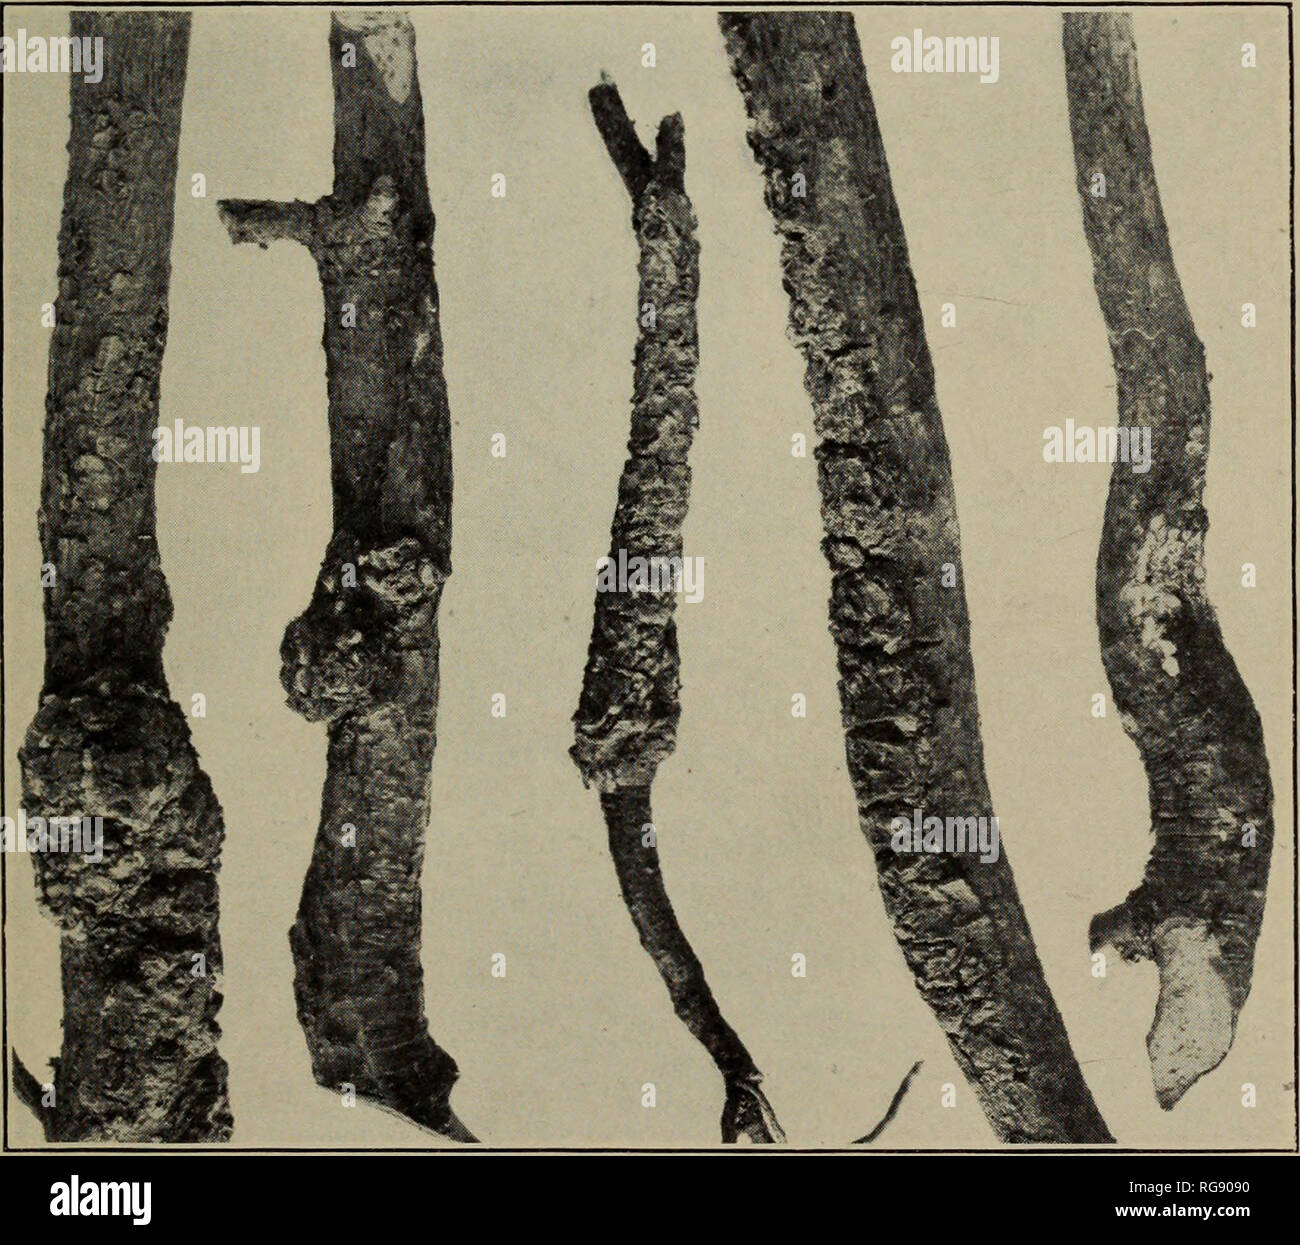 . [Bulletins on forest pathology : from Bulletin U.S.D.A., Washington, D.C., 1913-1925]. Trees; Plant diseases. Fig. 1.—A 6-Year-0ld Jack Pine In- fected WITH PERIDERMIUM CEREBRUM. The complete girdling of the main stem by two oppositely arranged galls is shown. Note the wedge-shaped gall tissues. Fiq. 2.—Four-Year-Old Seedlings of Jack Pine, Showing the Char- acteristic Swellings of Perider- mium Cerebrum. The entire crown of the seedlings develops into spherical brooms.. Fig. 3.—Various Types of Infection of Young Jack Pine by Peri- dermium comptoniae. Note that in the central figure the fun - Stock Image